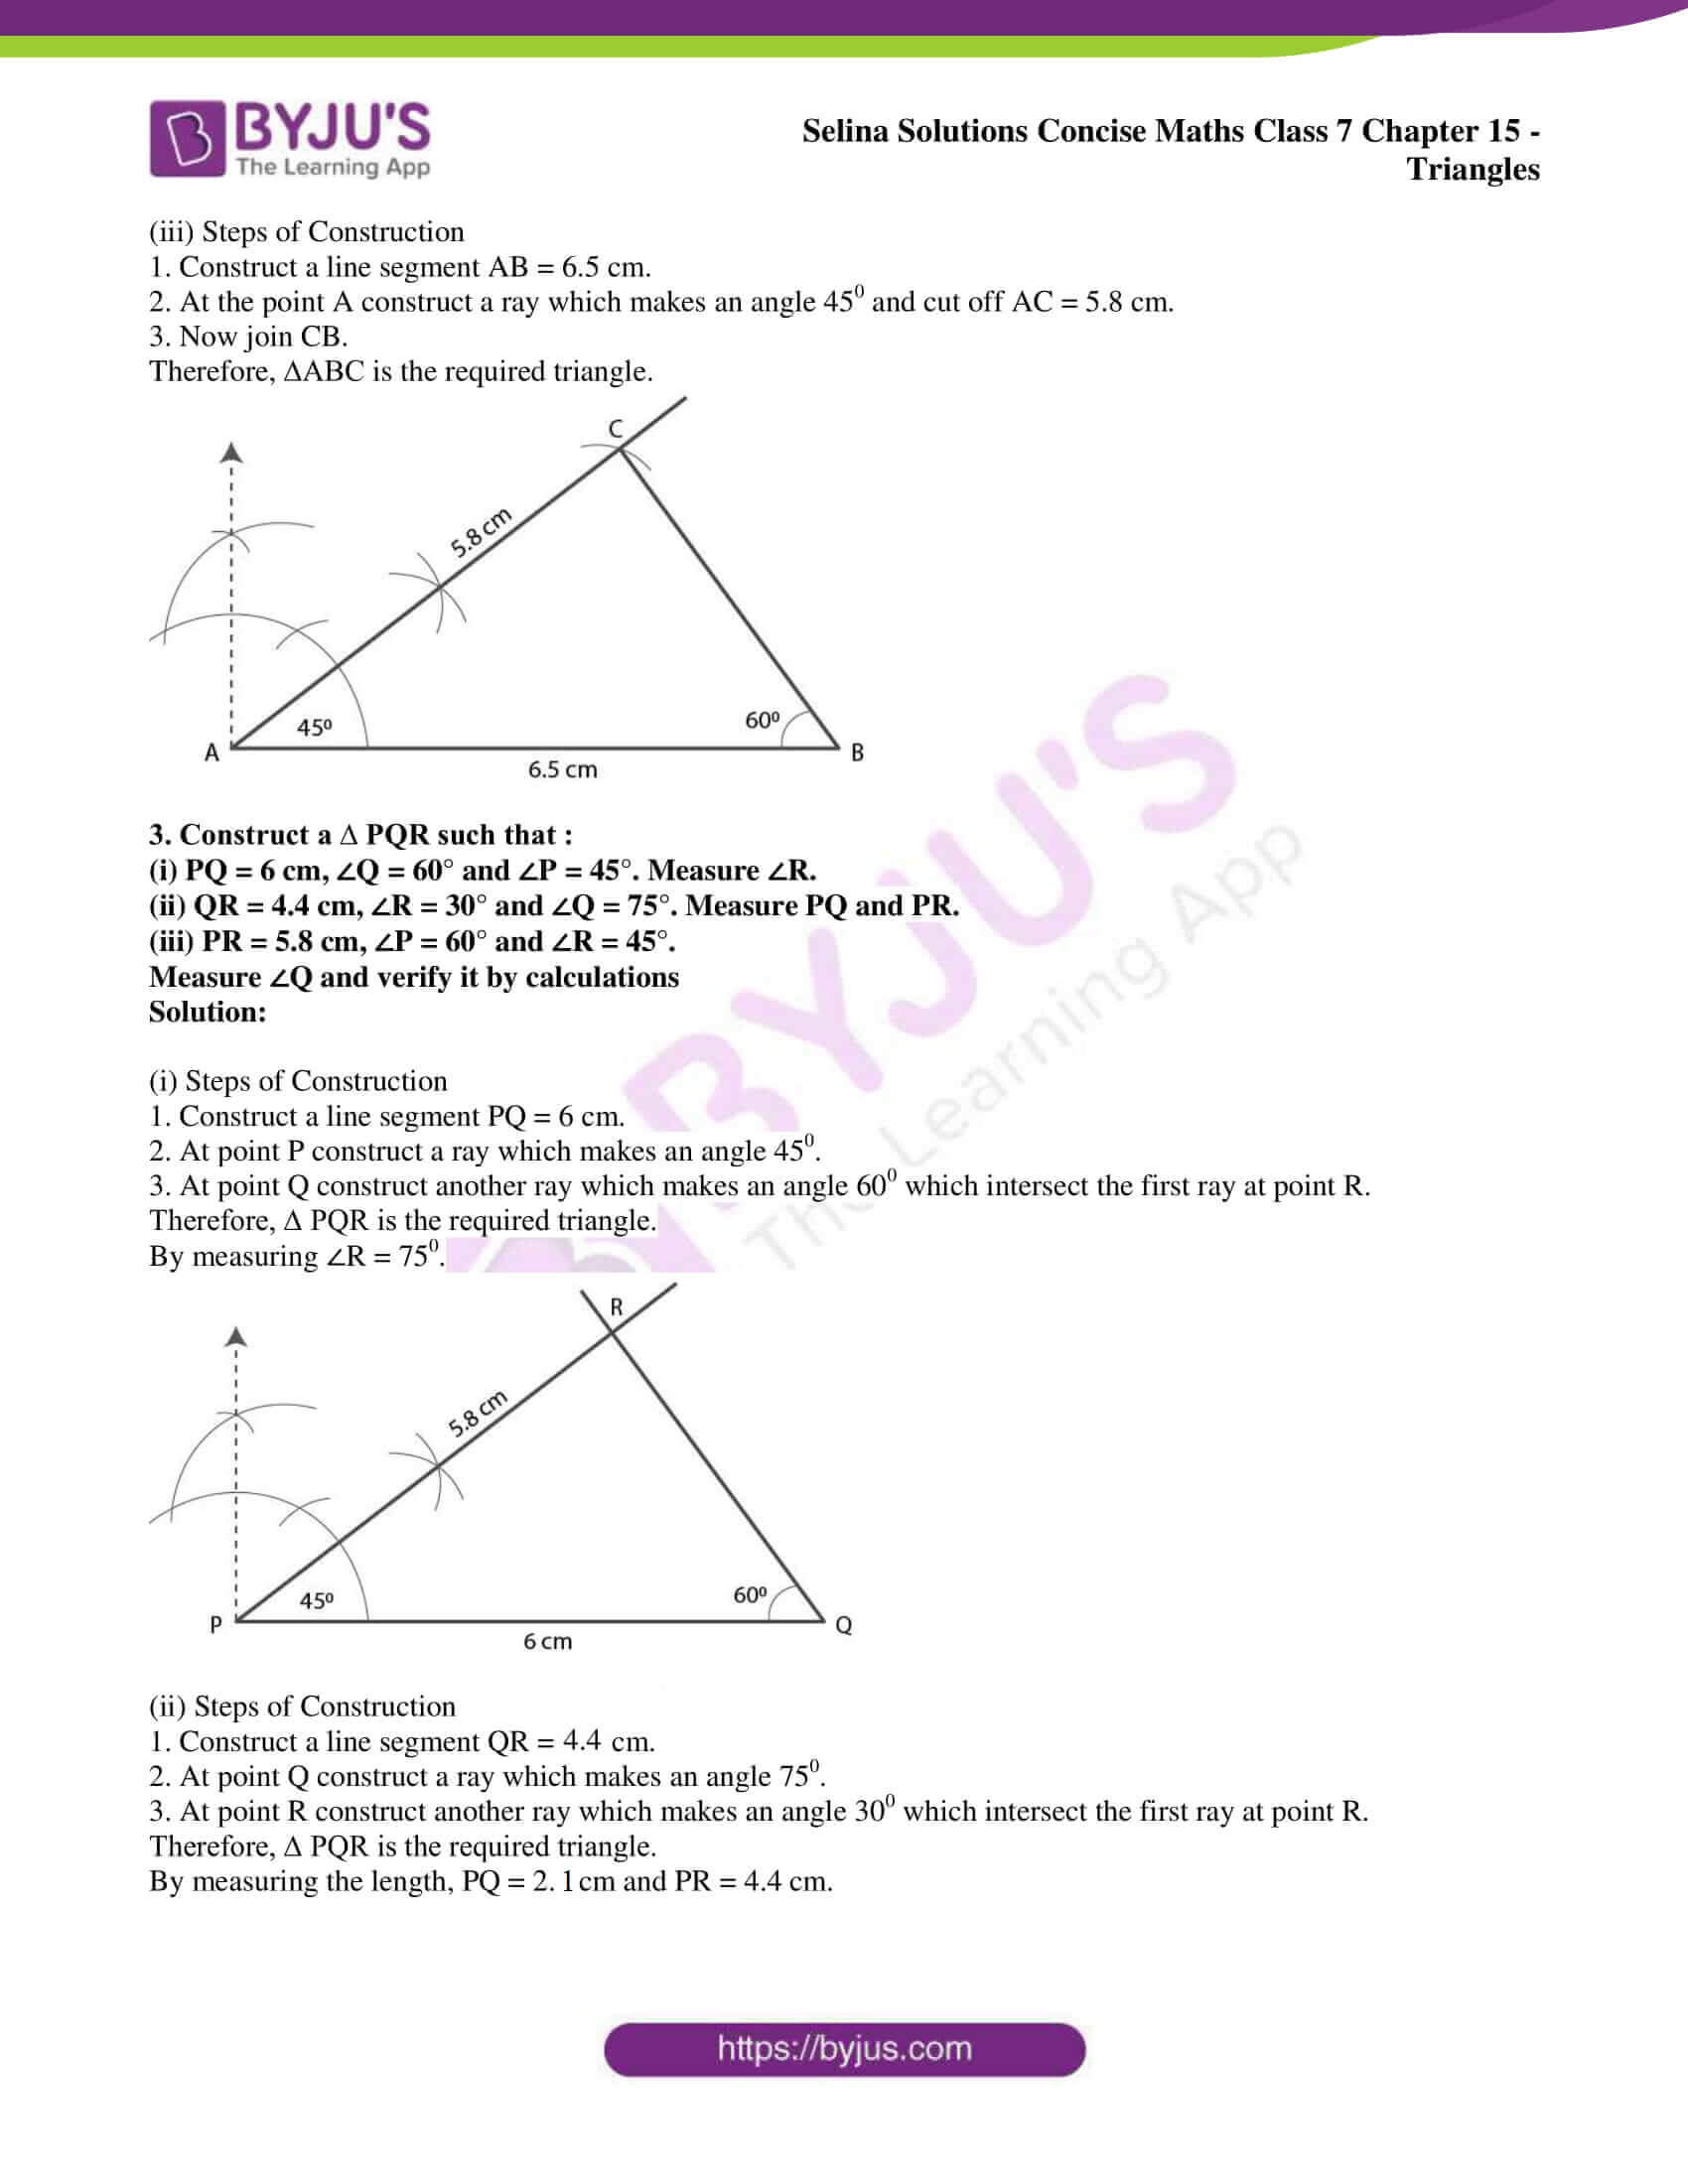 selina sol concise maths class 7 chapter 15 ex c 03